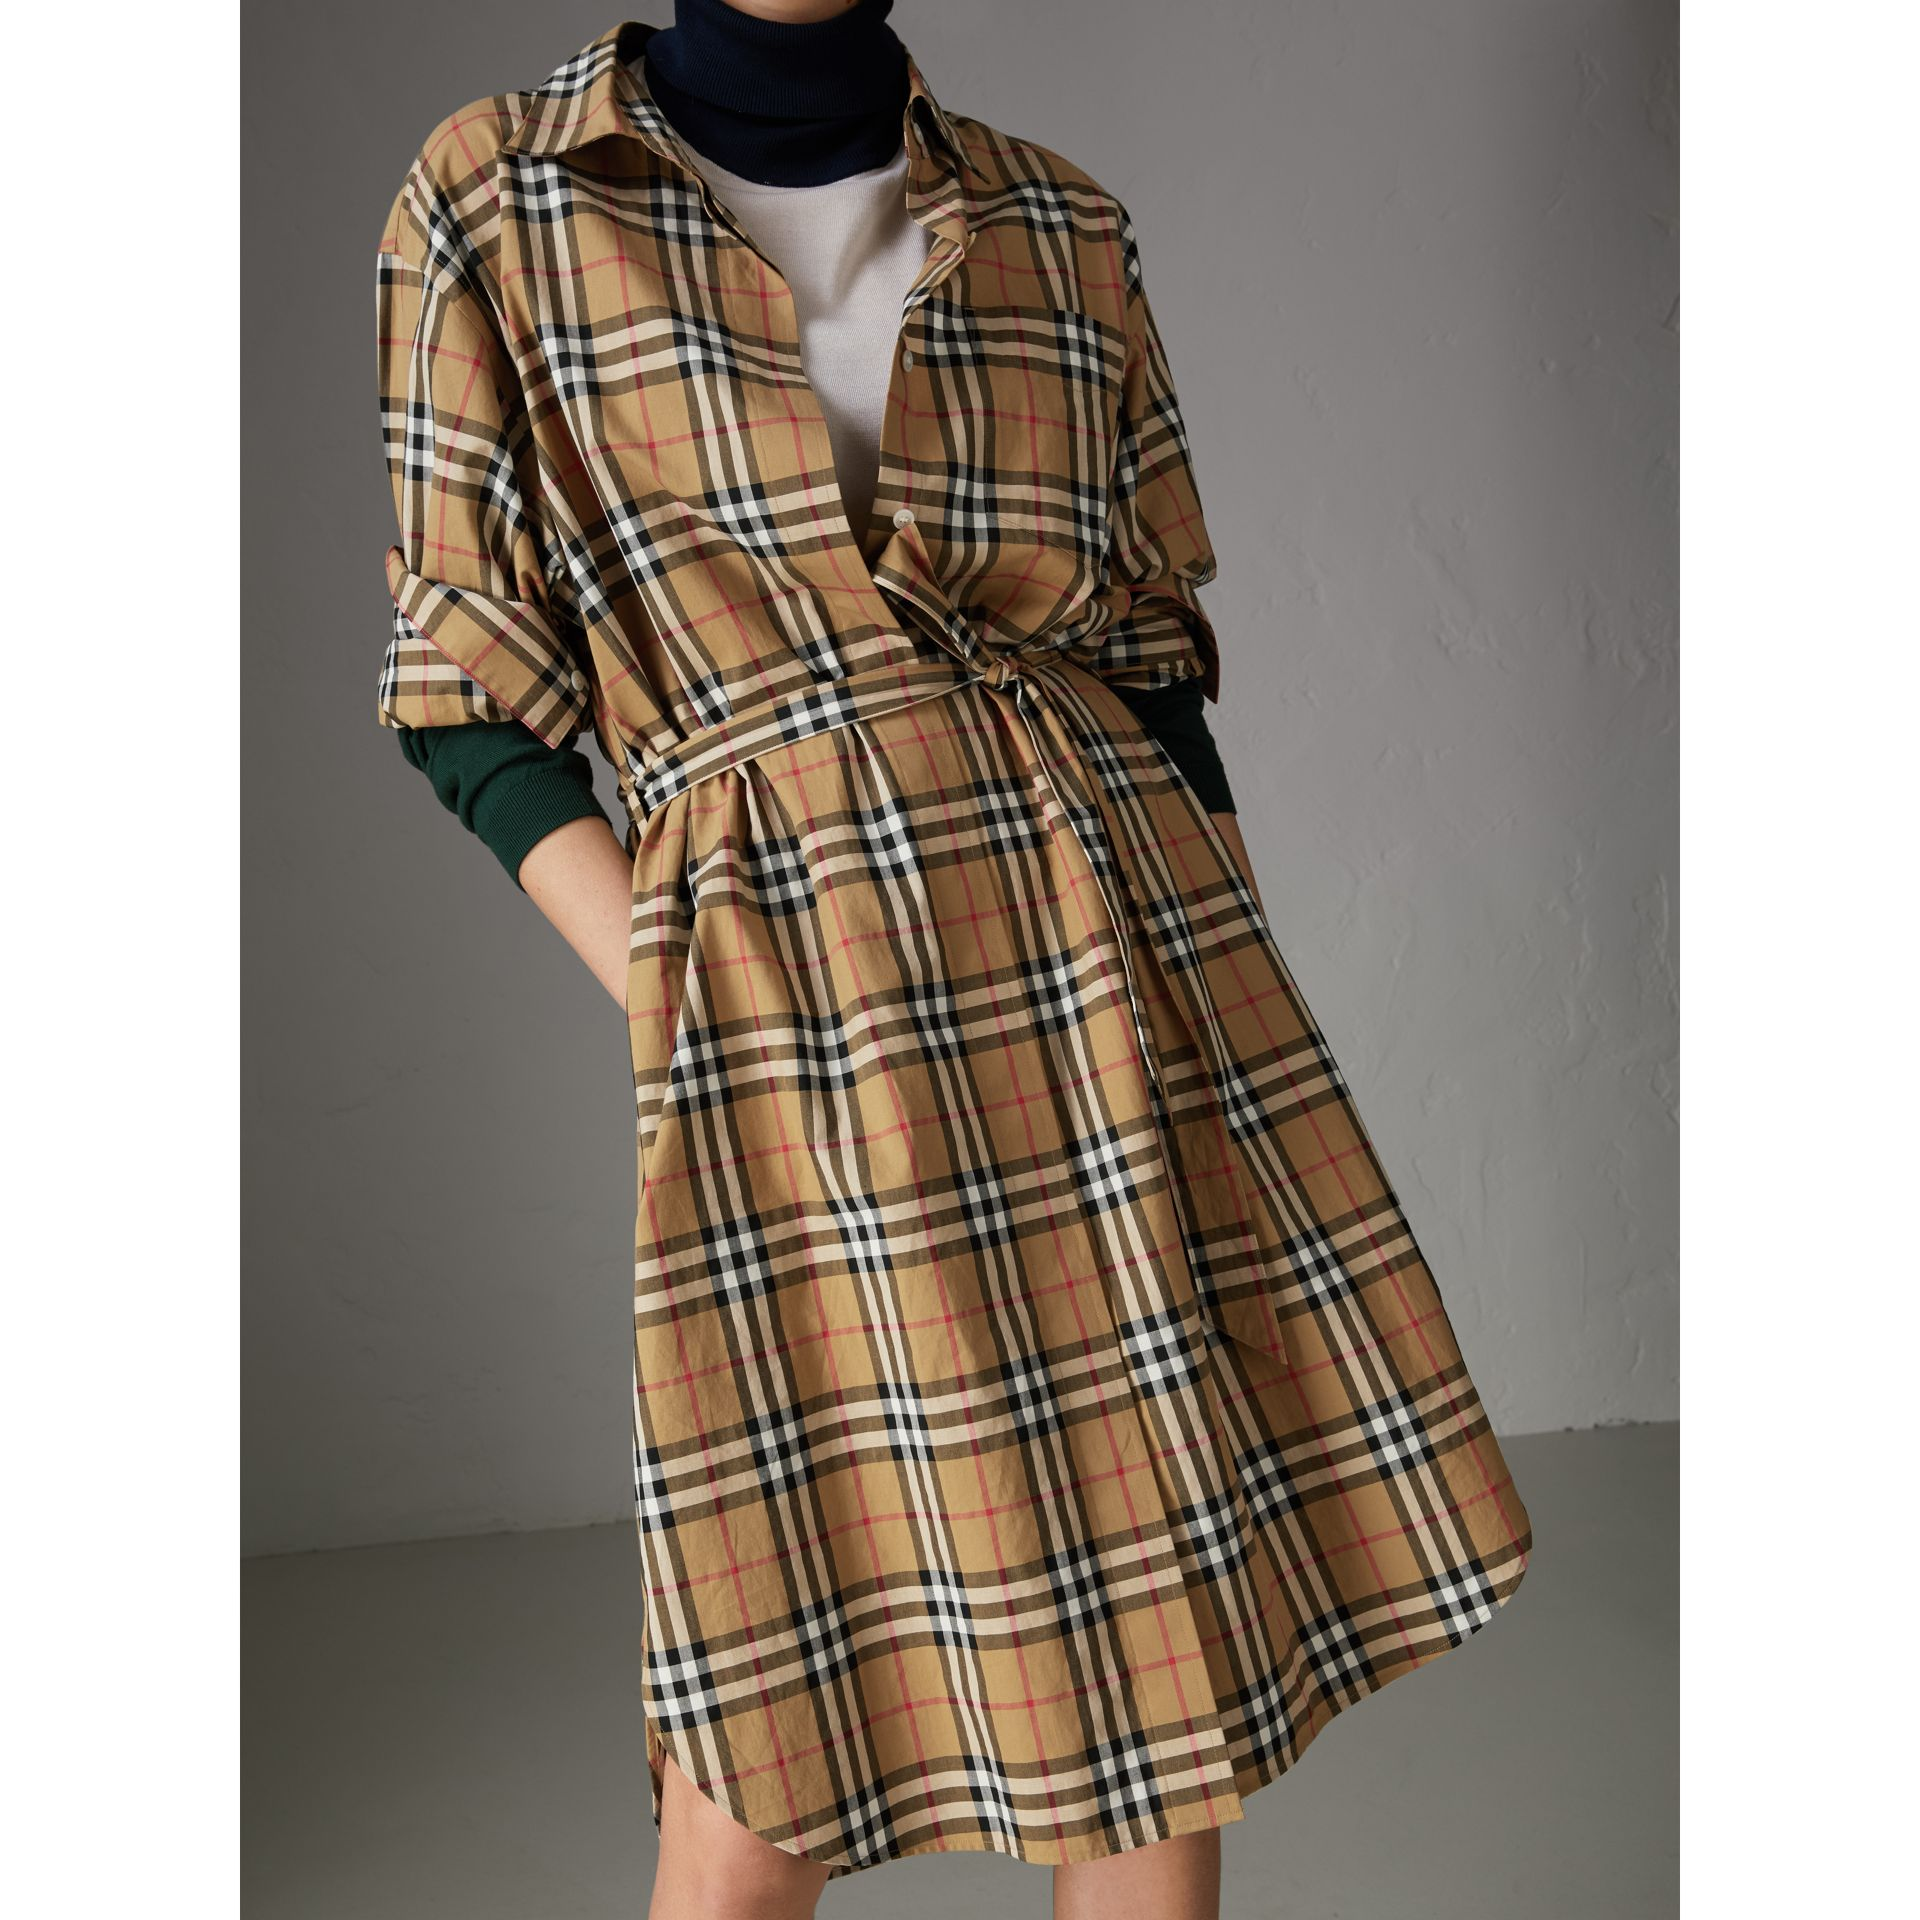 Tie-waist Vintage Check Cotton Shirt Dress in Antique Yellow - Women | Burberry United States - gallery image 1